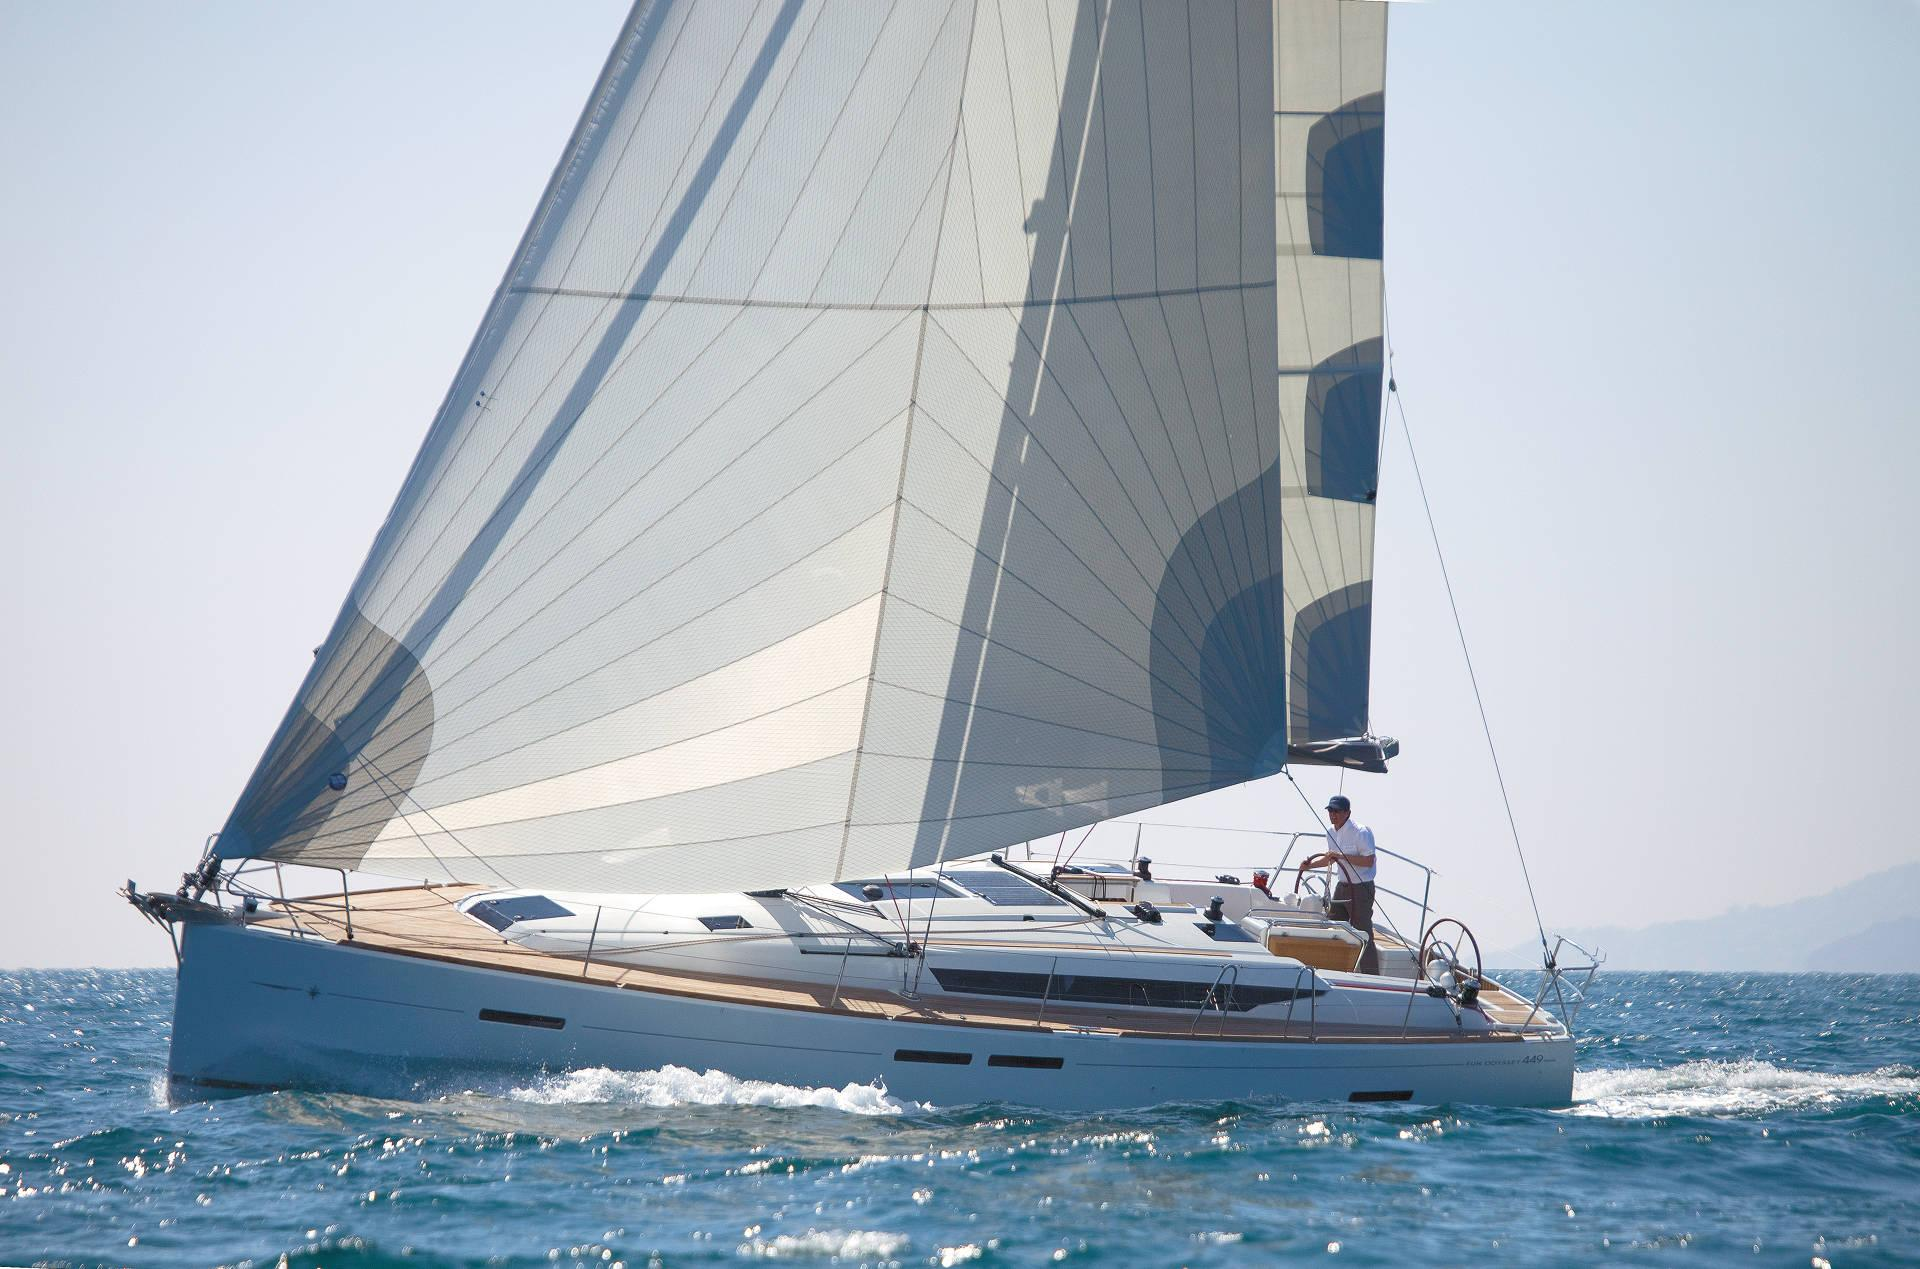 Sun Odyssey 449 Prestige - Sailing Yacht for Charter in Greece